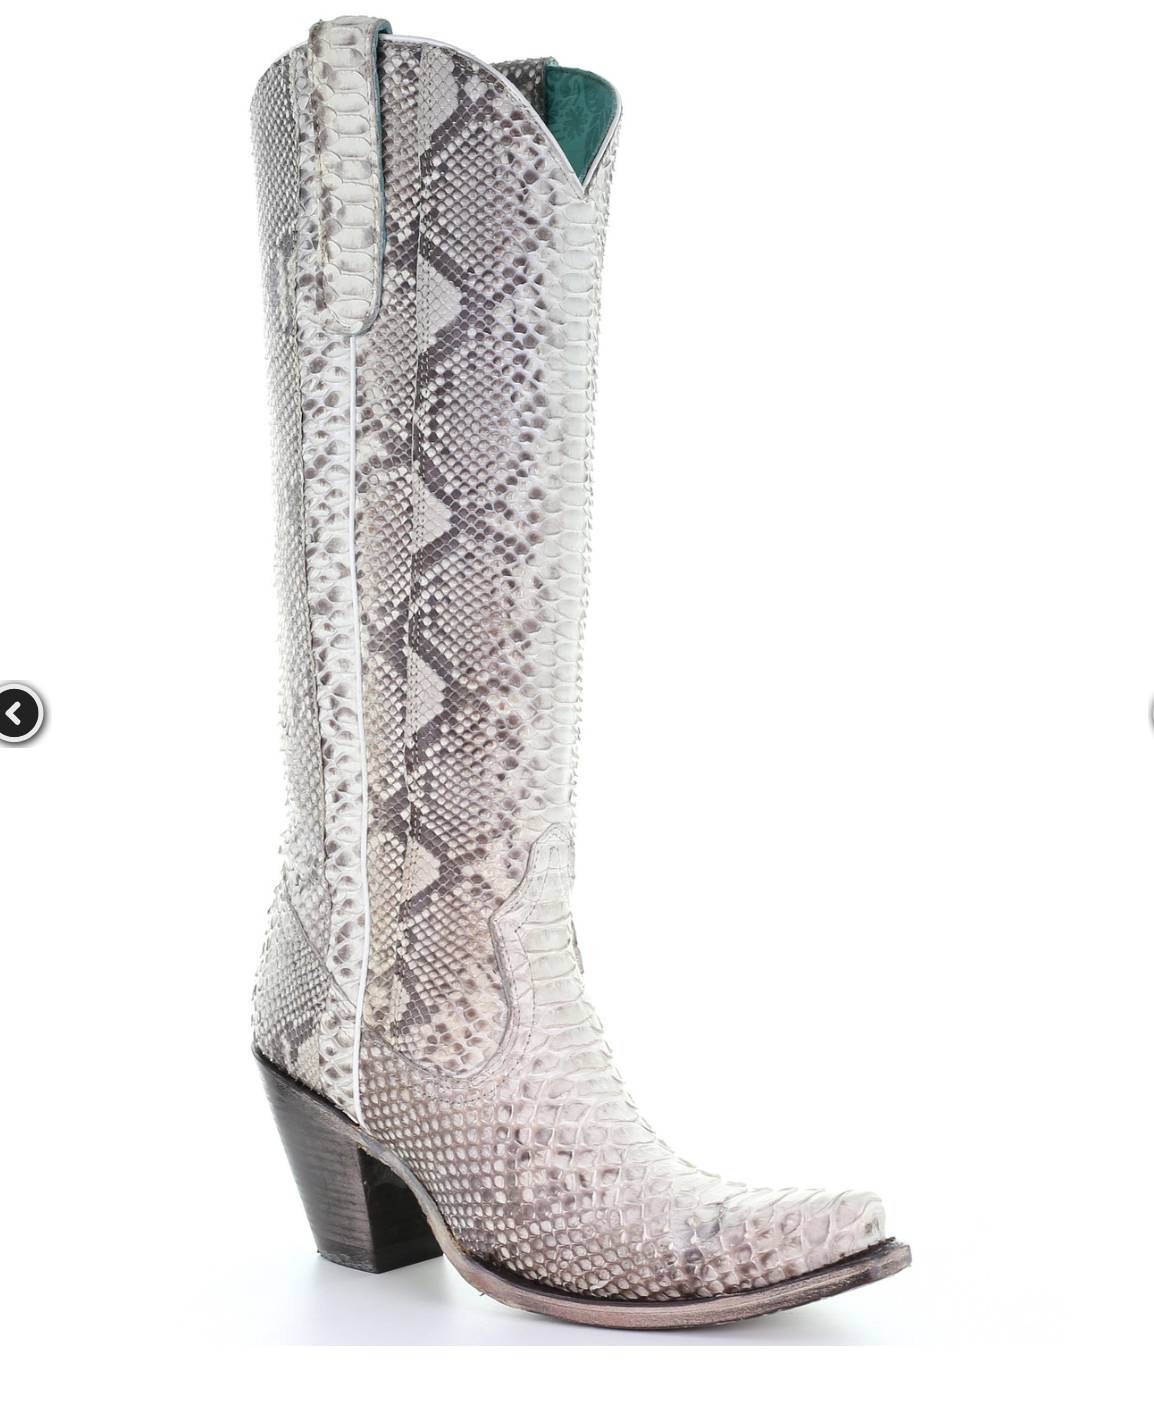 Corral Natural Python Tall Boots